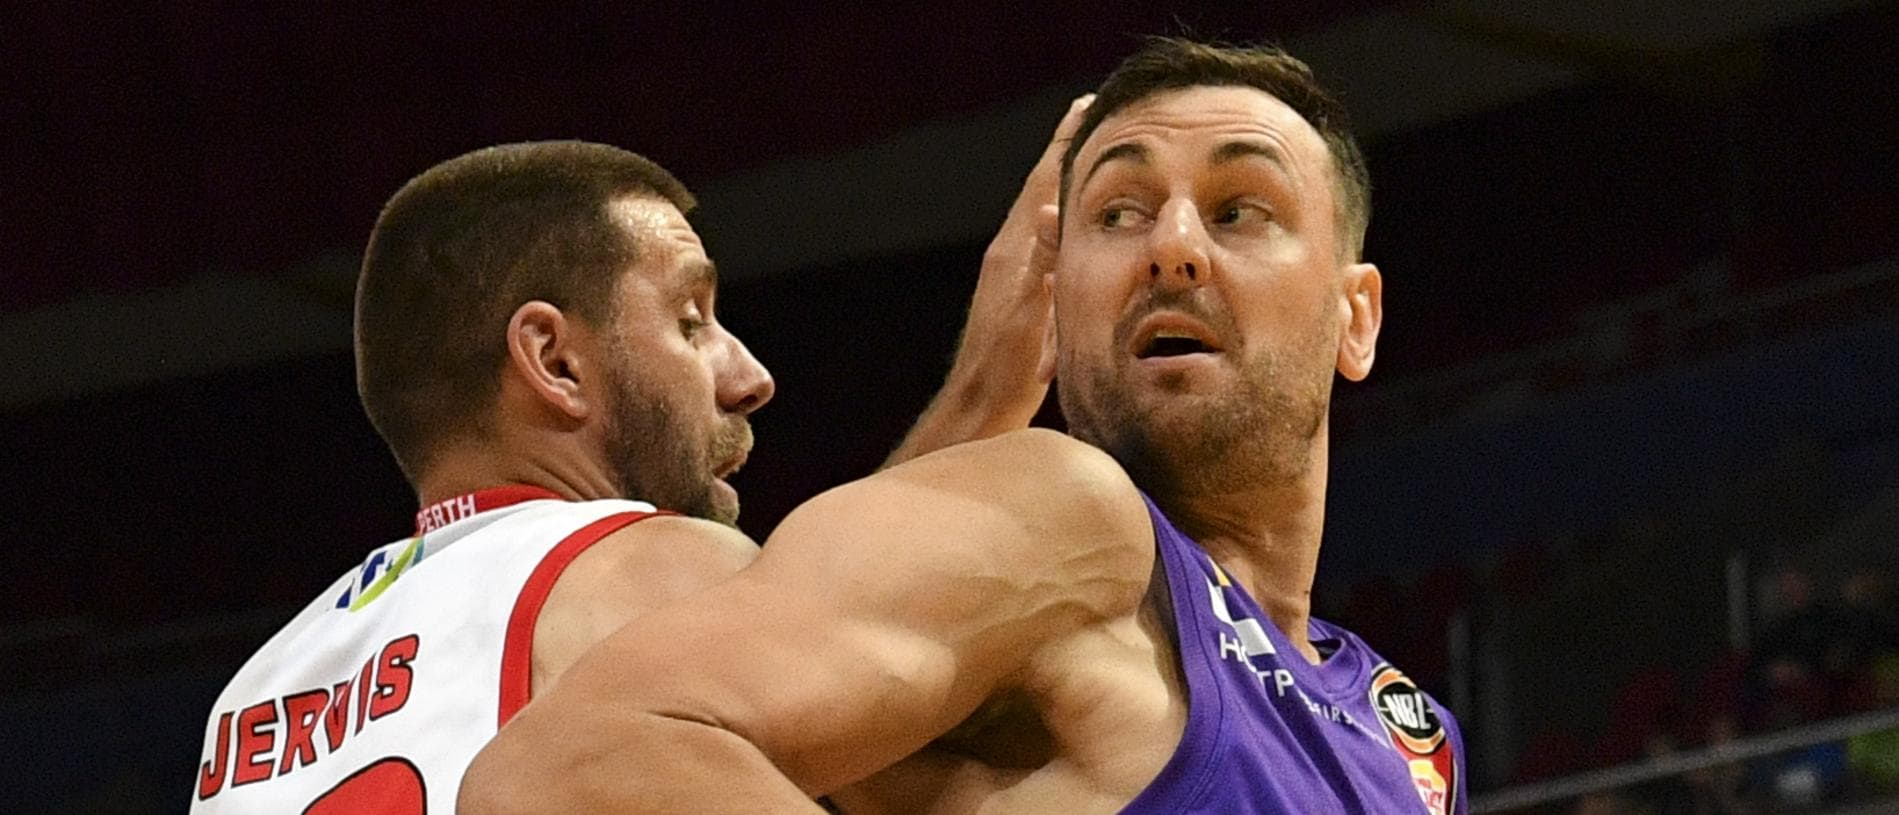 Andrew Bogut (right) of the kings competes for possession against Tom Jervis of the Wildcats during the Round 8 NBL match between Sydney Kings and Perth Wildcats at Qudos Bank Arena in Sydney, Thursday, December 6, 2018. (AAP Image/Brendan Esposito) NO ARCHIVING, EDITORIAL USE ONLY